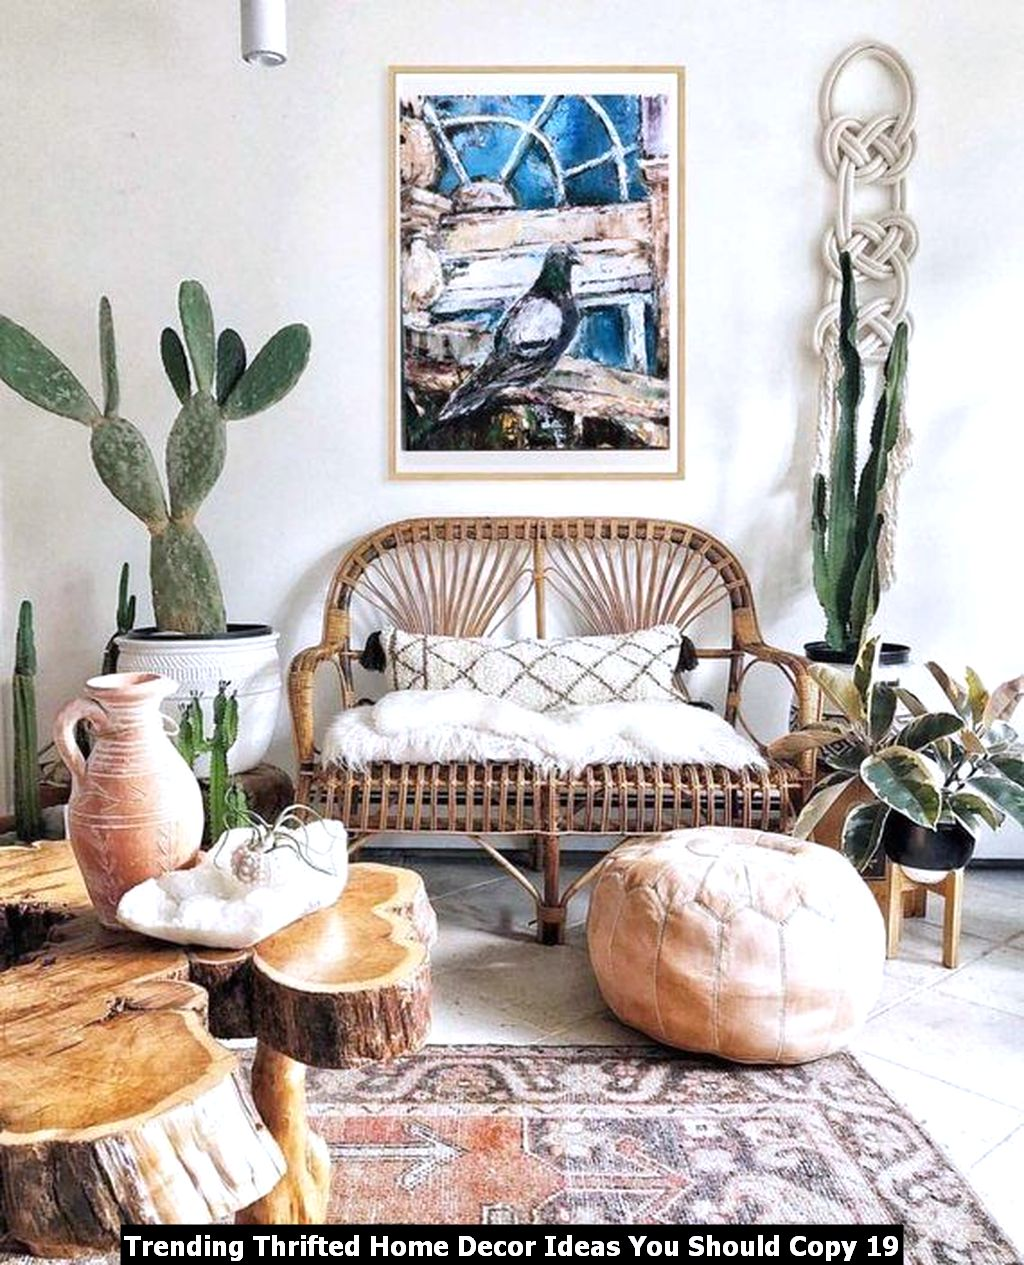 Trending Thrifted Home Decor Ideas You Should Copy 19